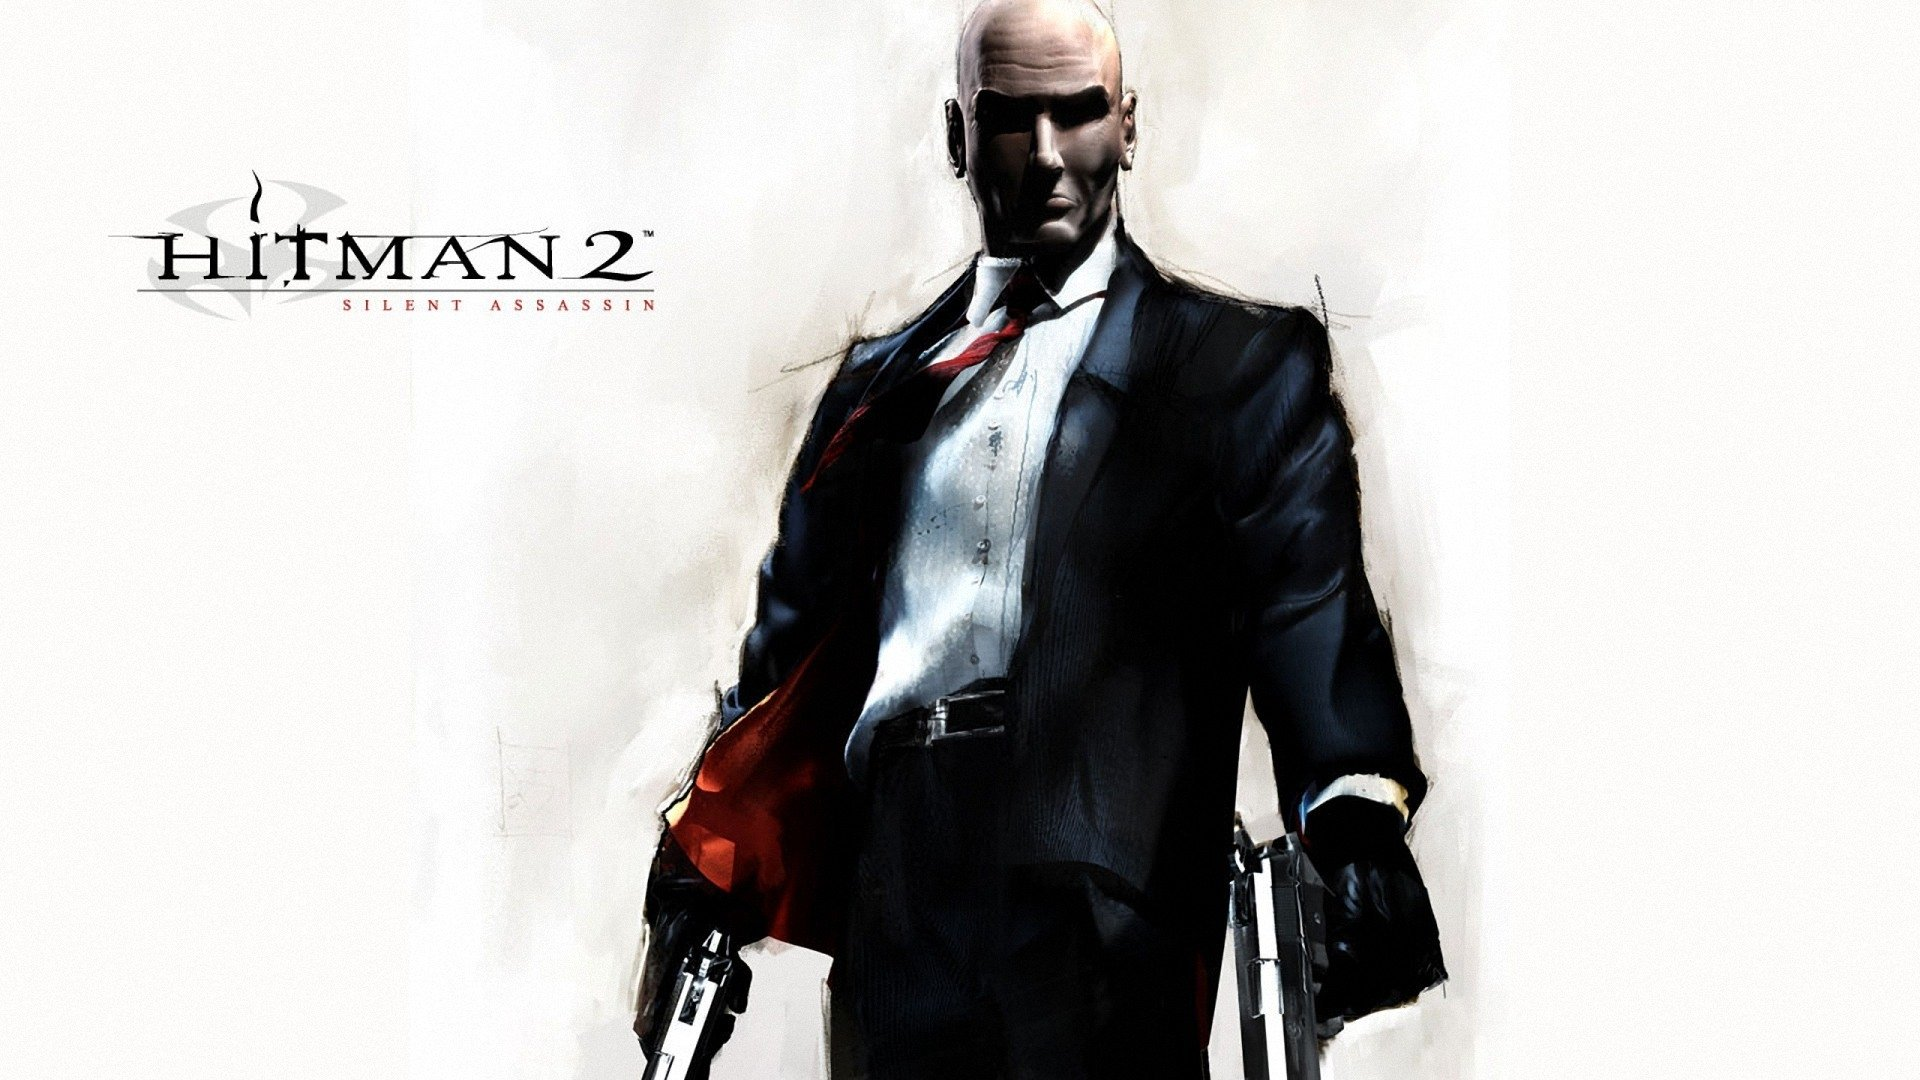 6 Hitman 2 Silent Assassin Hd Wallpapers Background Images Wallpaper Abyss